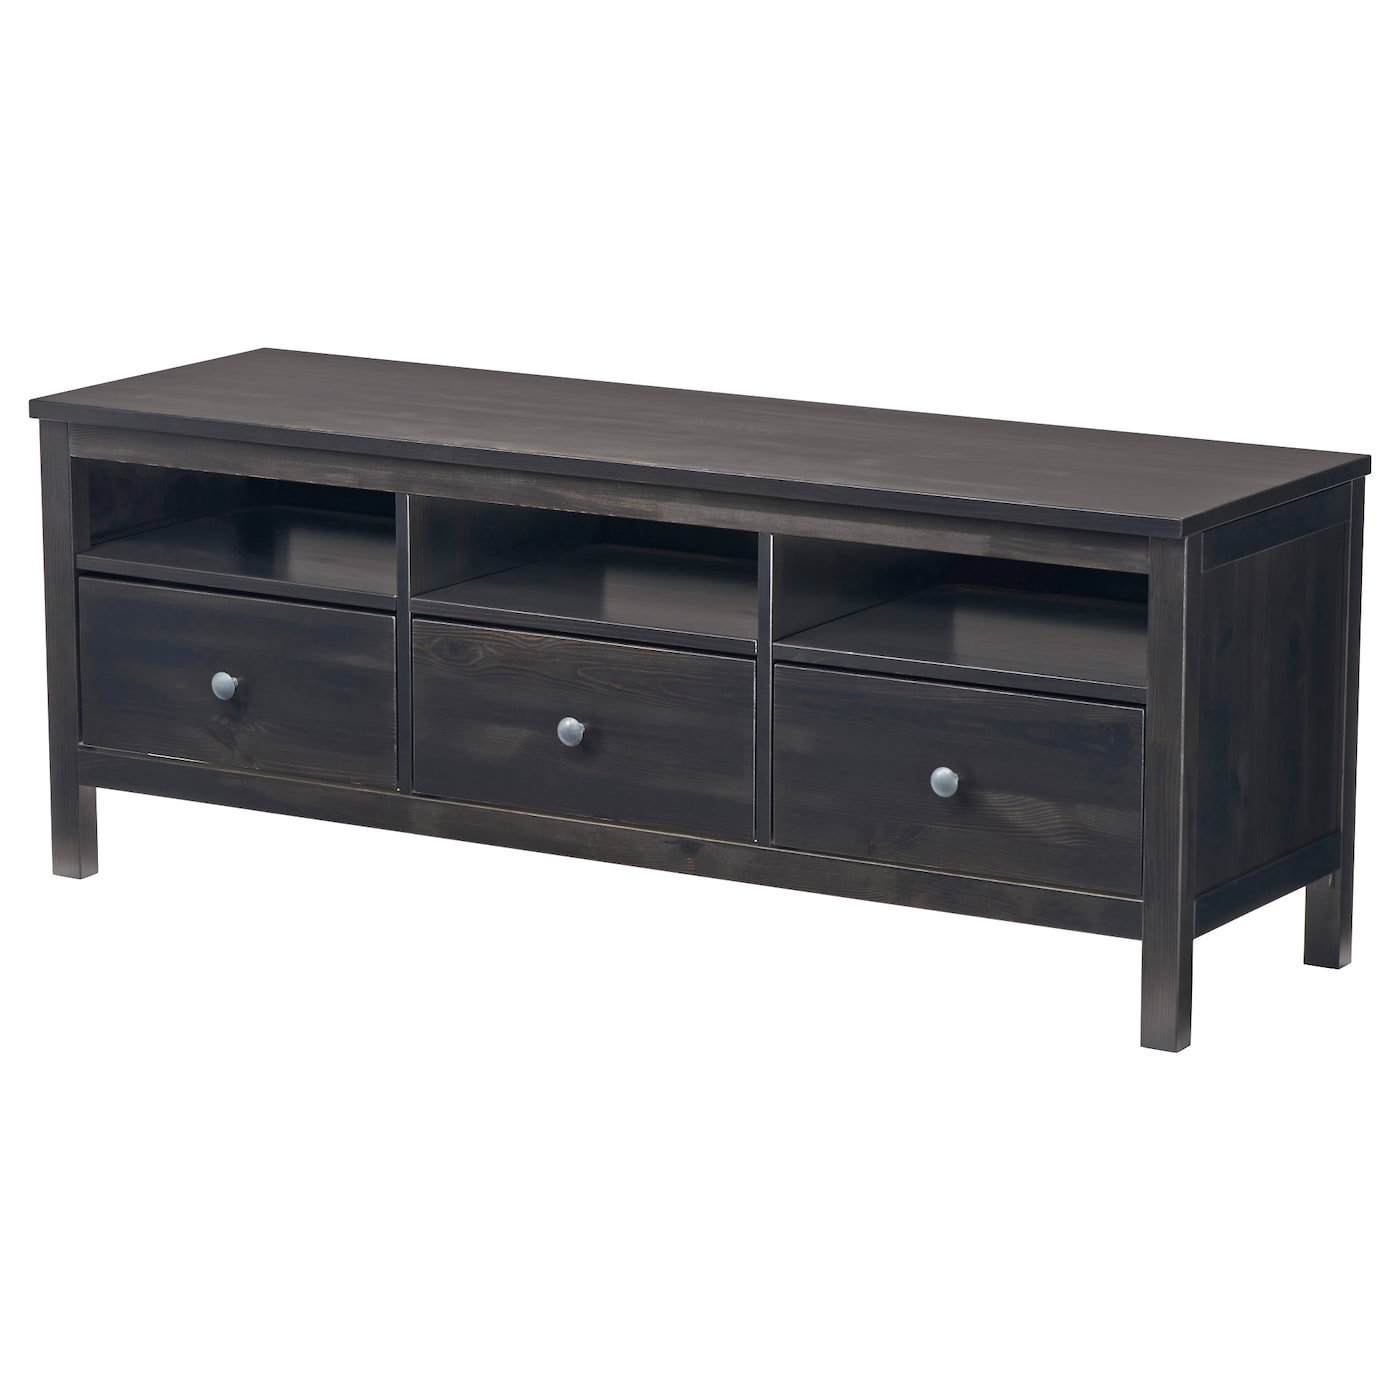 HEMNES TV bench Black brown 148x47 cm IKEA